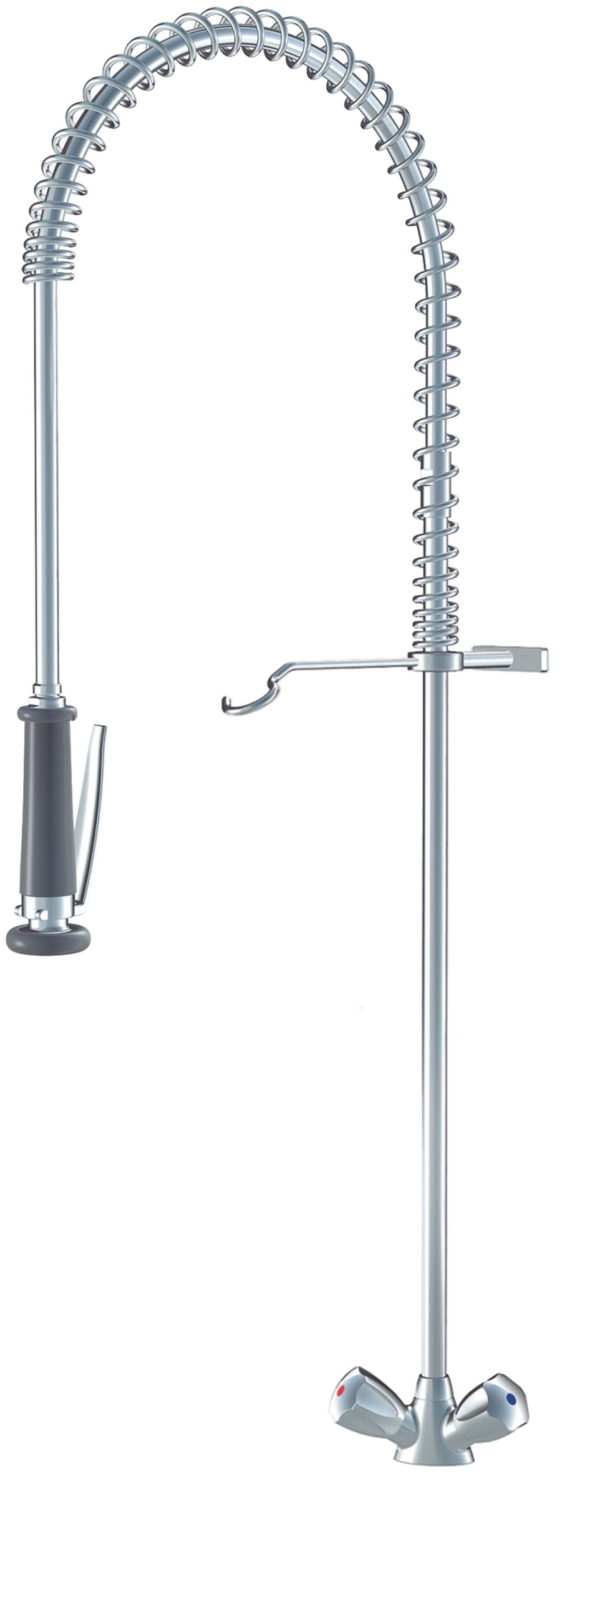 Shower heads for floor and wall mounting - 100675-100679